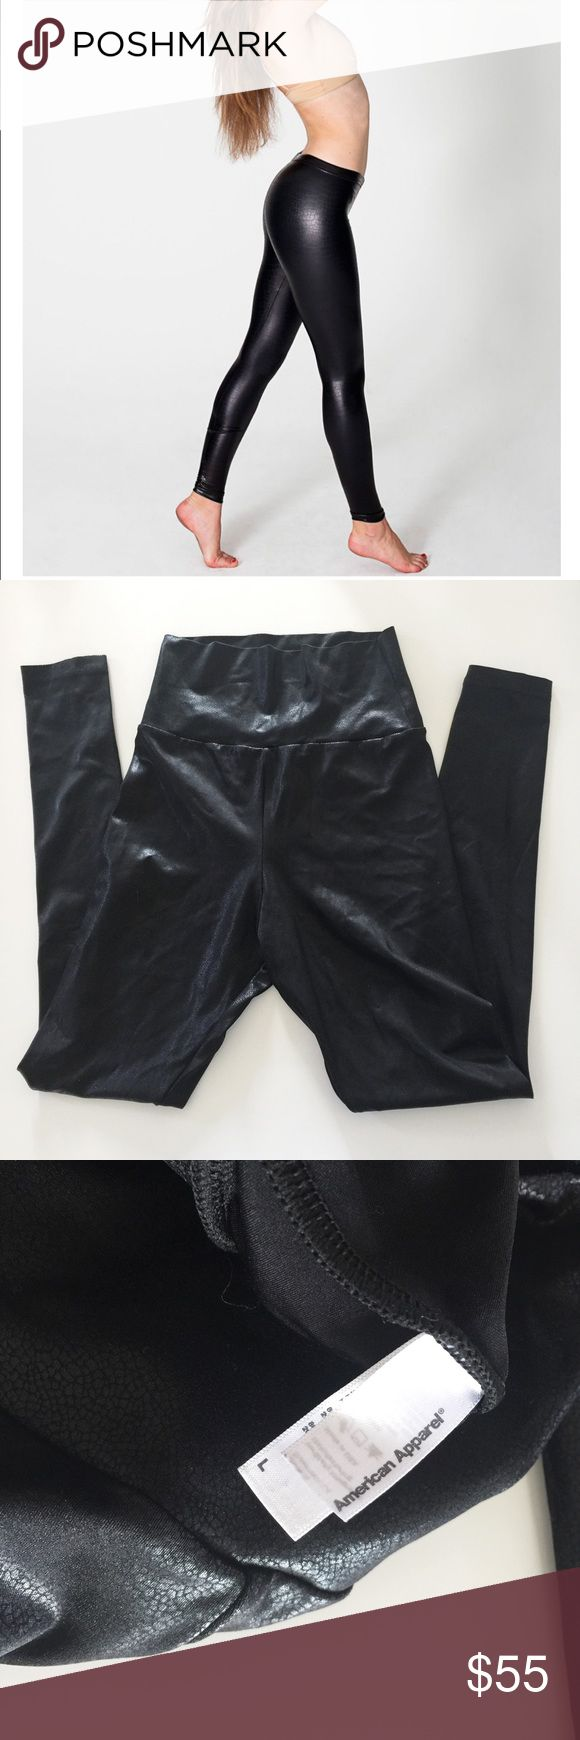 """American Apparel Shiny Leggings in Boa Black Sz L American Apparel Shiny Leggings in The SOLD OUT and no longer available, popular, Boa Black color and texture. Size Large. NWOT. 80% Nylon and 20% Elastane.    """"A slimming silhouette constructed from the same shiny fabrication as the Shiny High-Waist Legging for a soft feel and superior water-wicking lining. The Shiny Legging features a high waist with an elastic waistband, tapered legs, and a perfect sheen. This legging wears true to size…"""